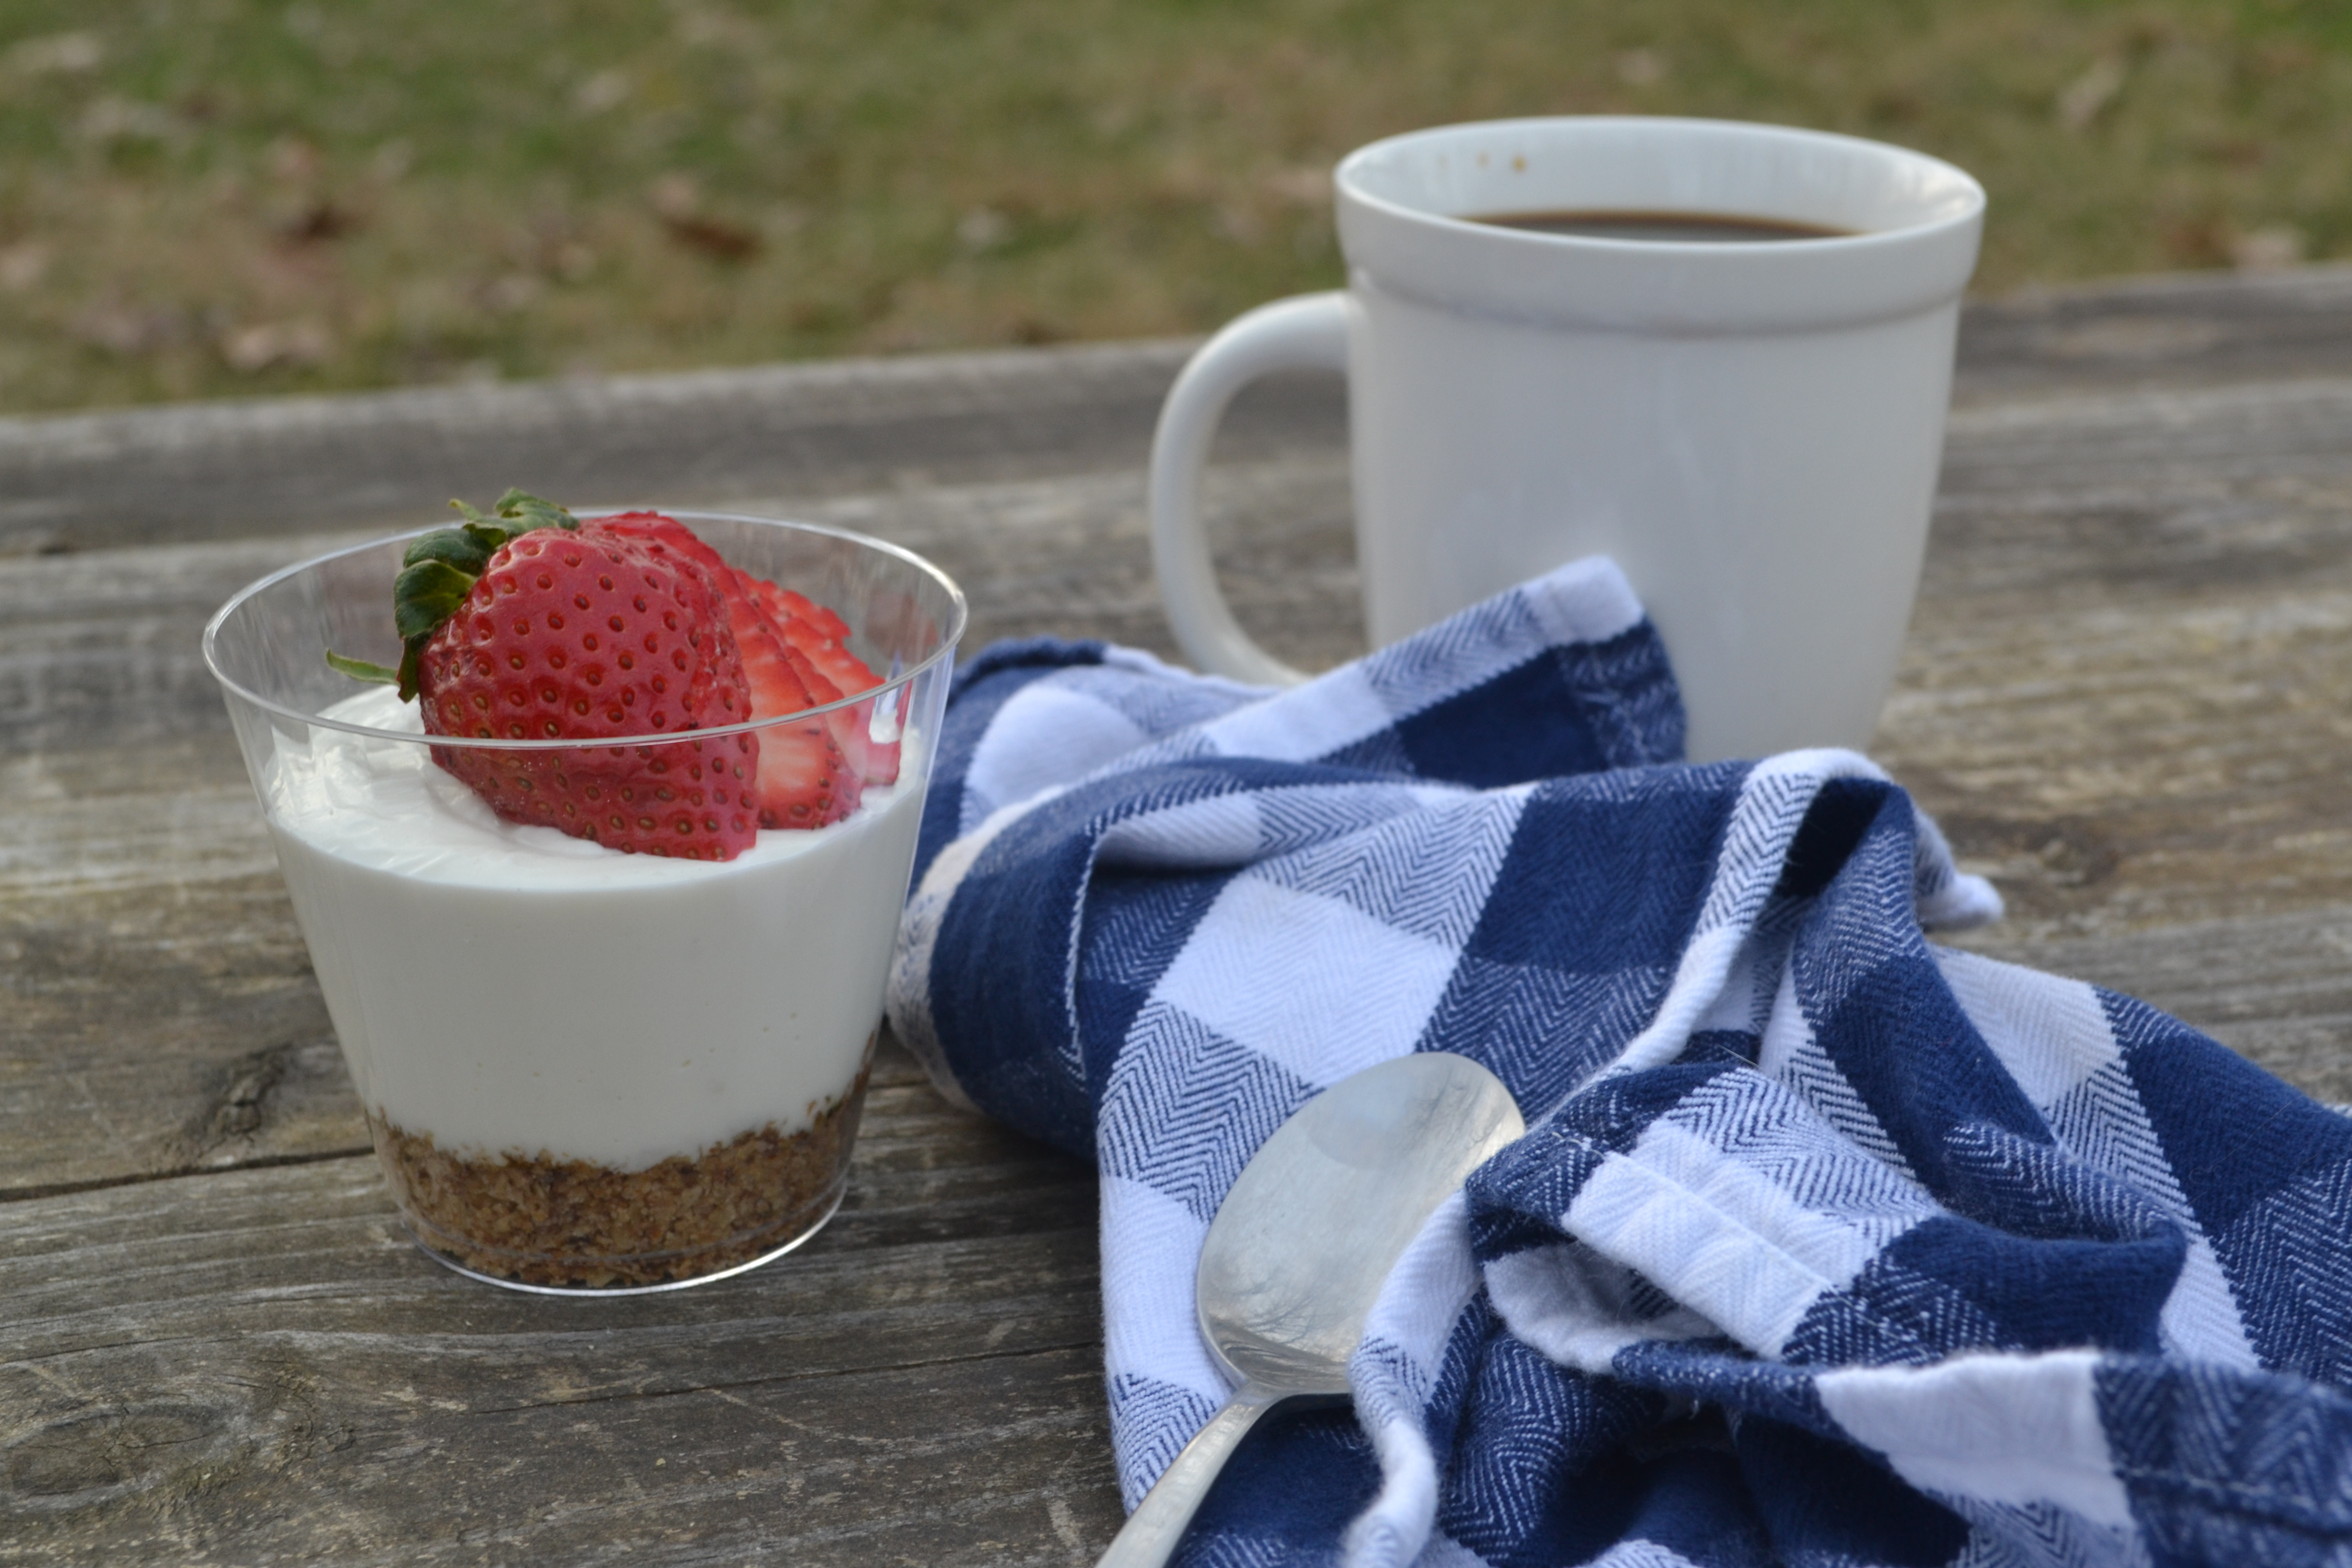 an individual cup of breakfast cheesecake with a strawberry on top on a wooden picnic table with a blue gingham napkin